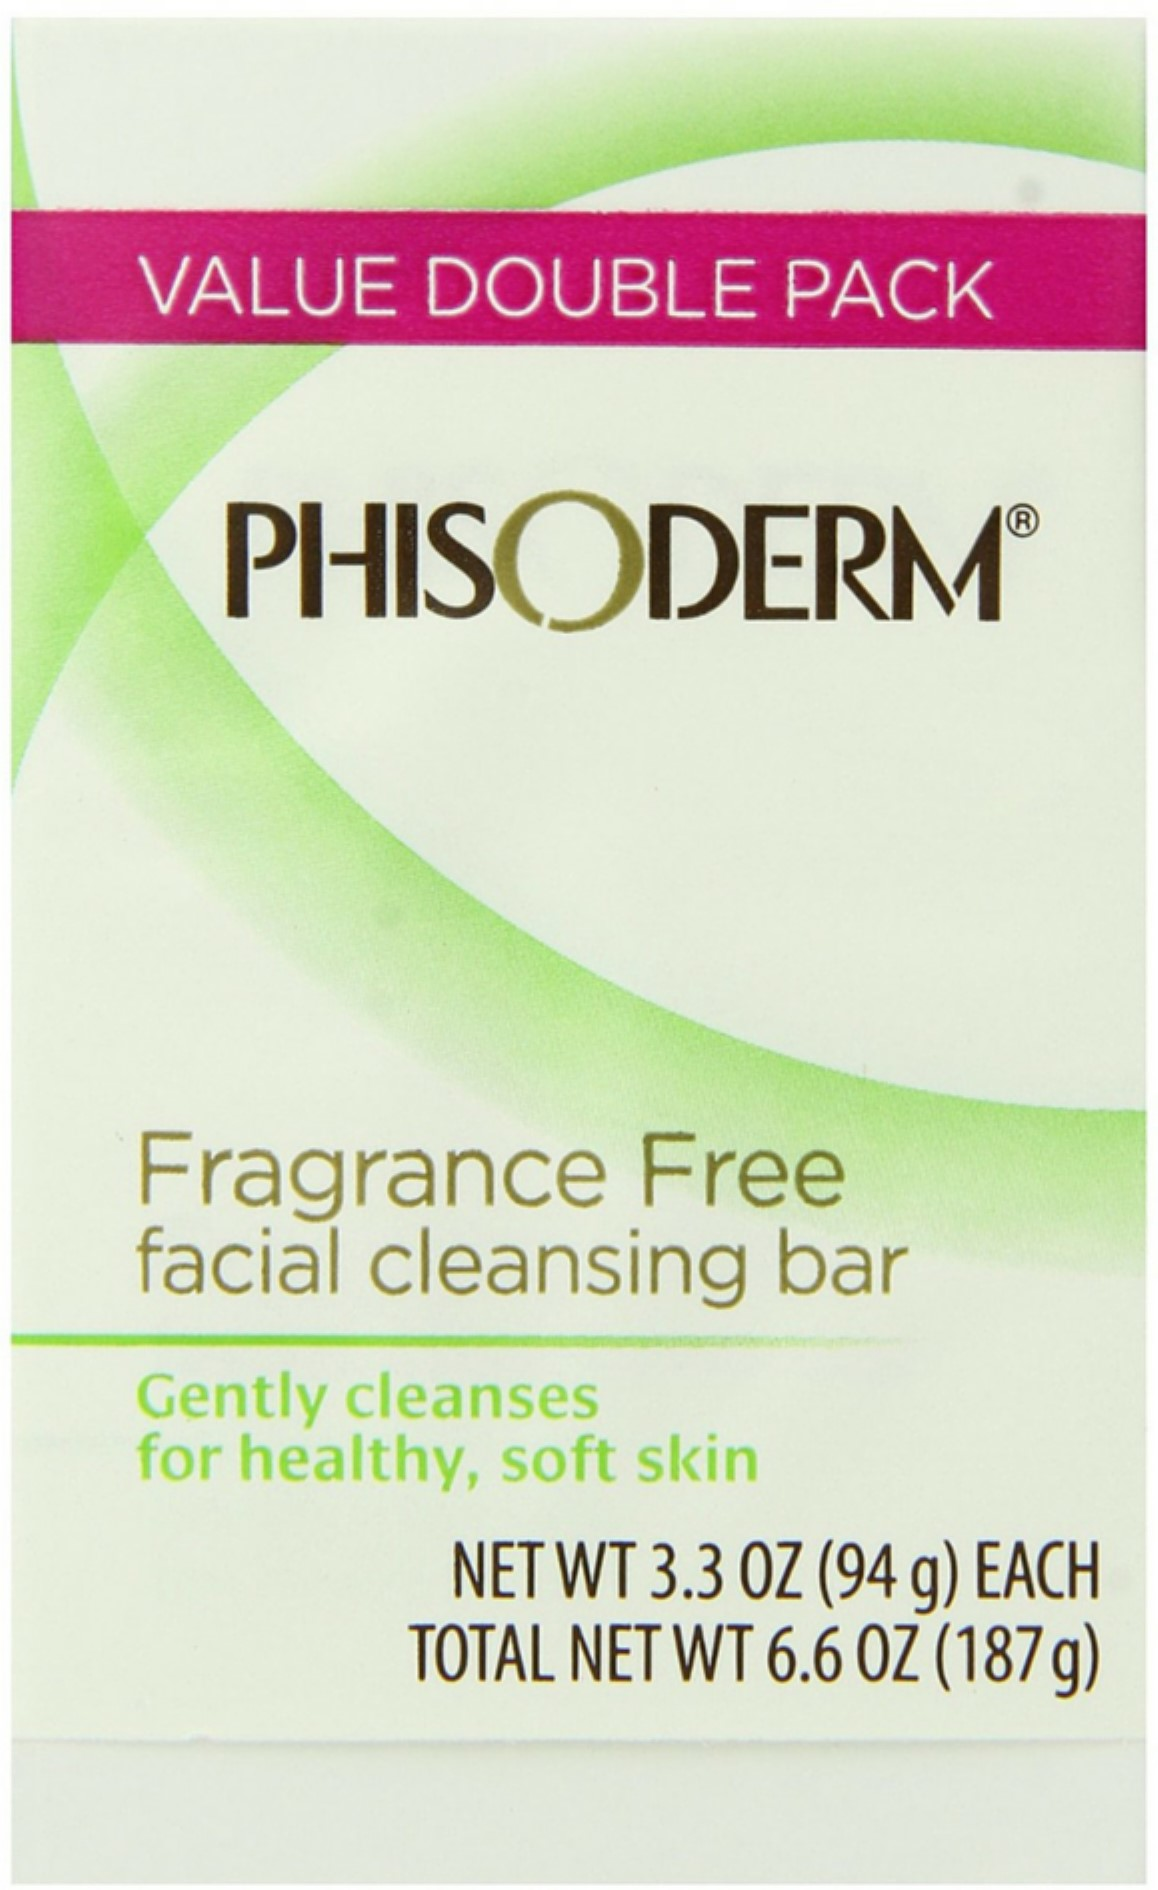 pHisoderm Facial Skin Cleansing Bar, Fragrance Free 2pack [2 x 3.3oz bars] (Pack of 4) ROSE WATER - 100% Pure Facial Toner and cleanser with a Floral Scent ( 4 Oz) with stopper (*)